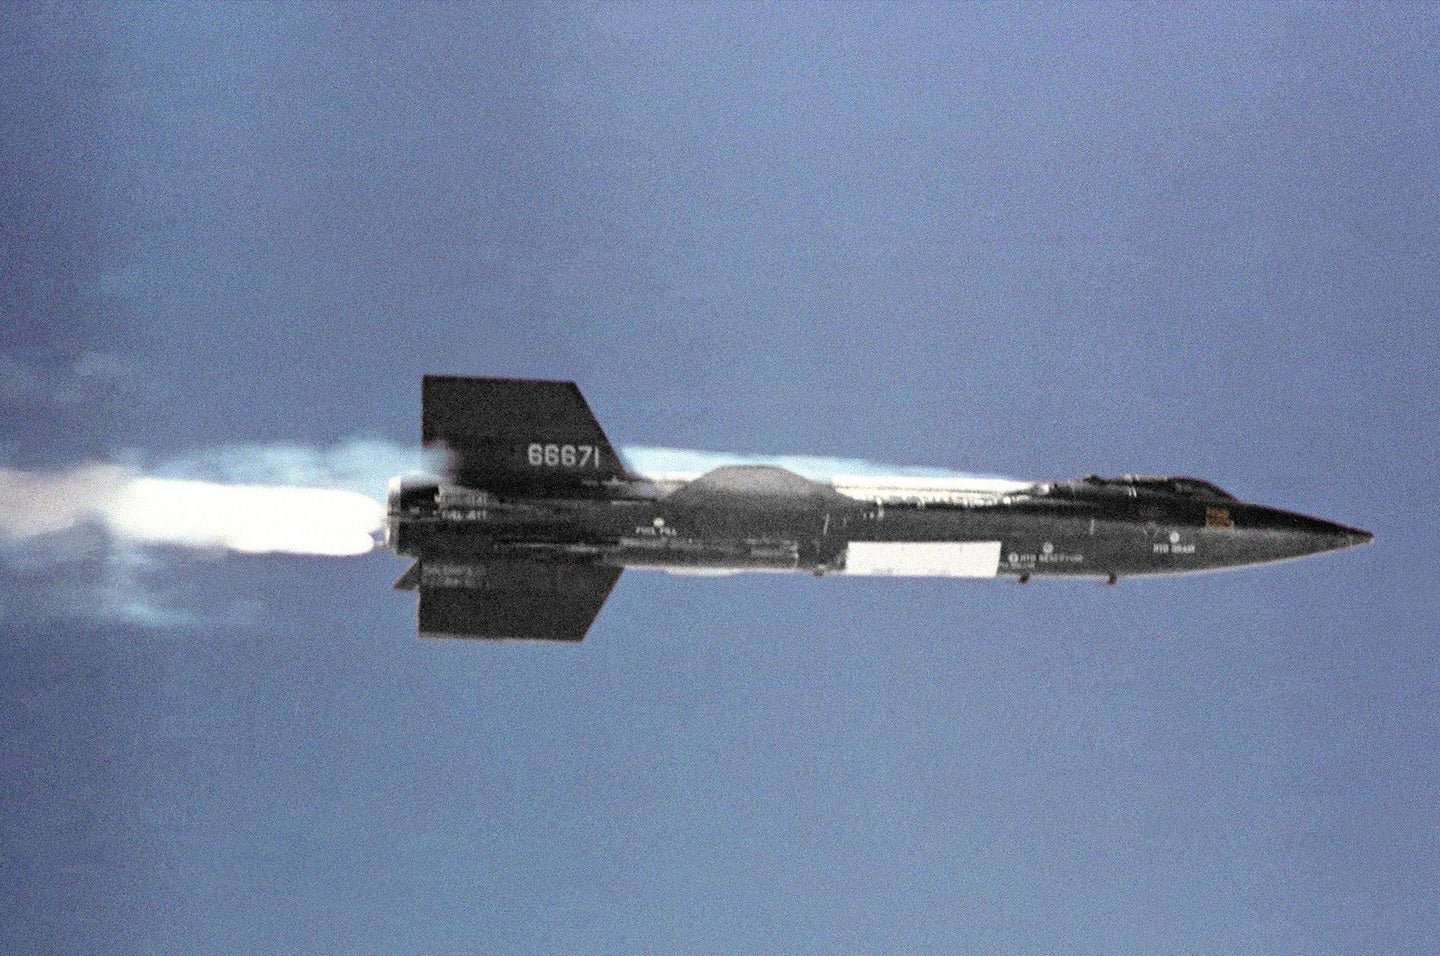 Getting The X-15 Up To Speed